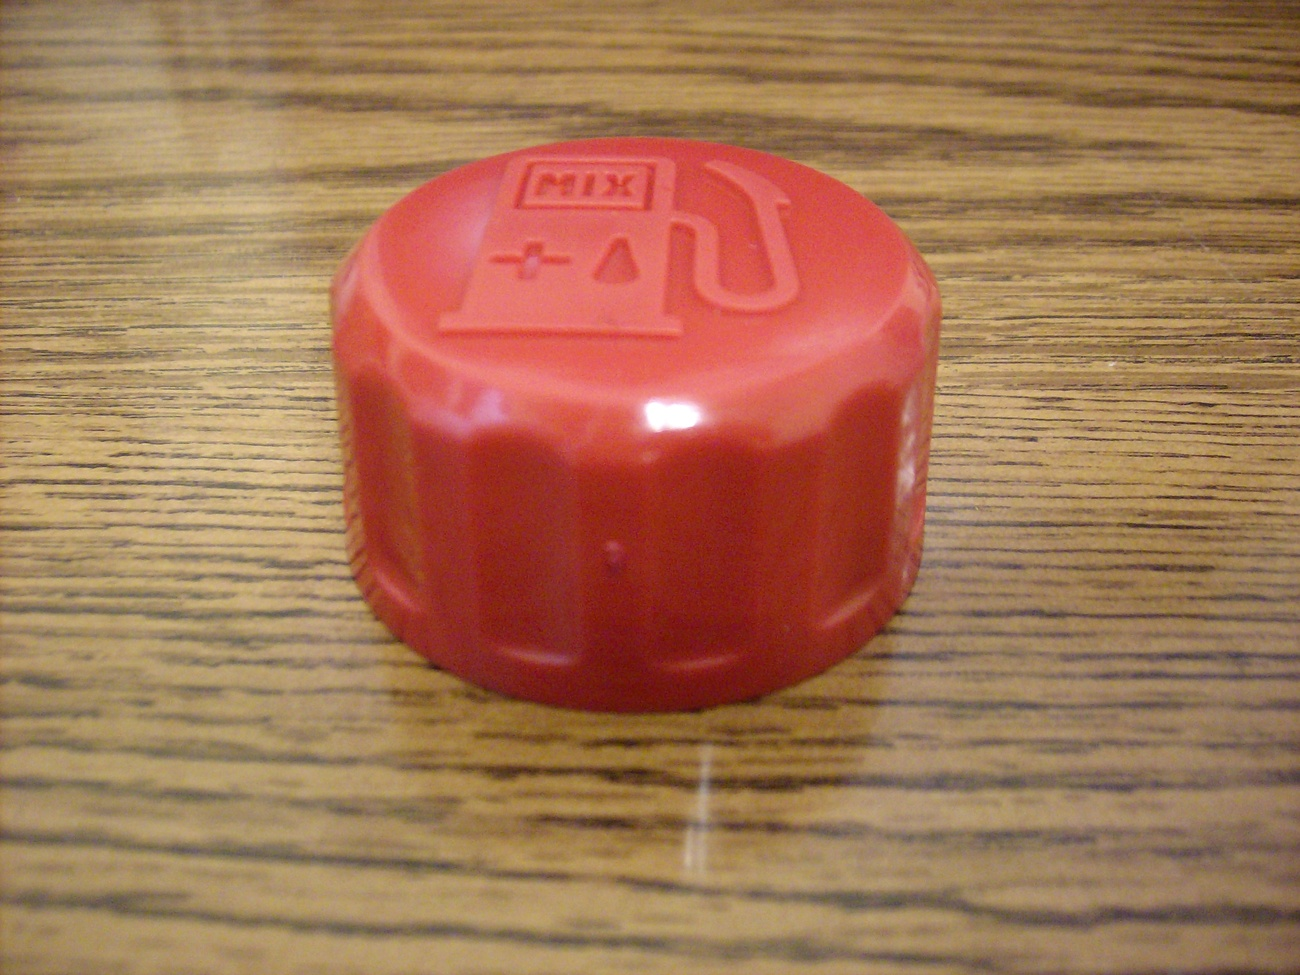 shindaiwa string trimmer t20 gas tank fuel cap